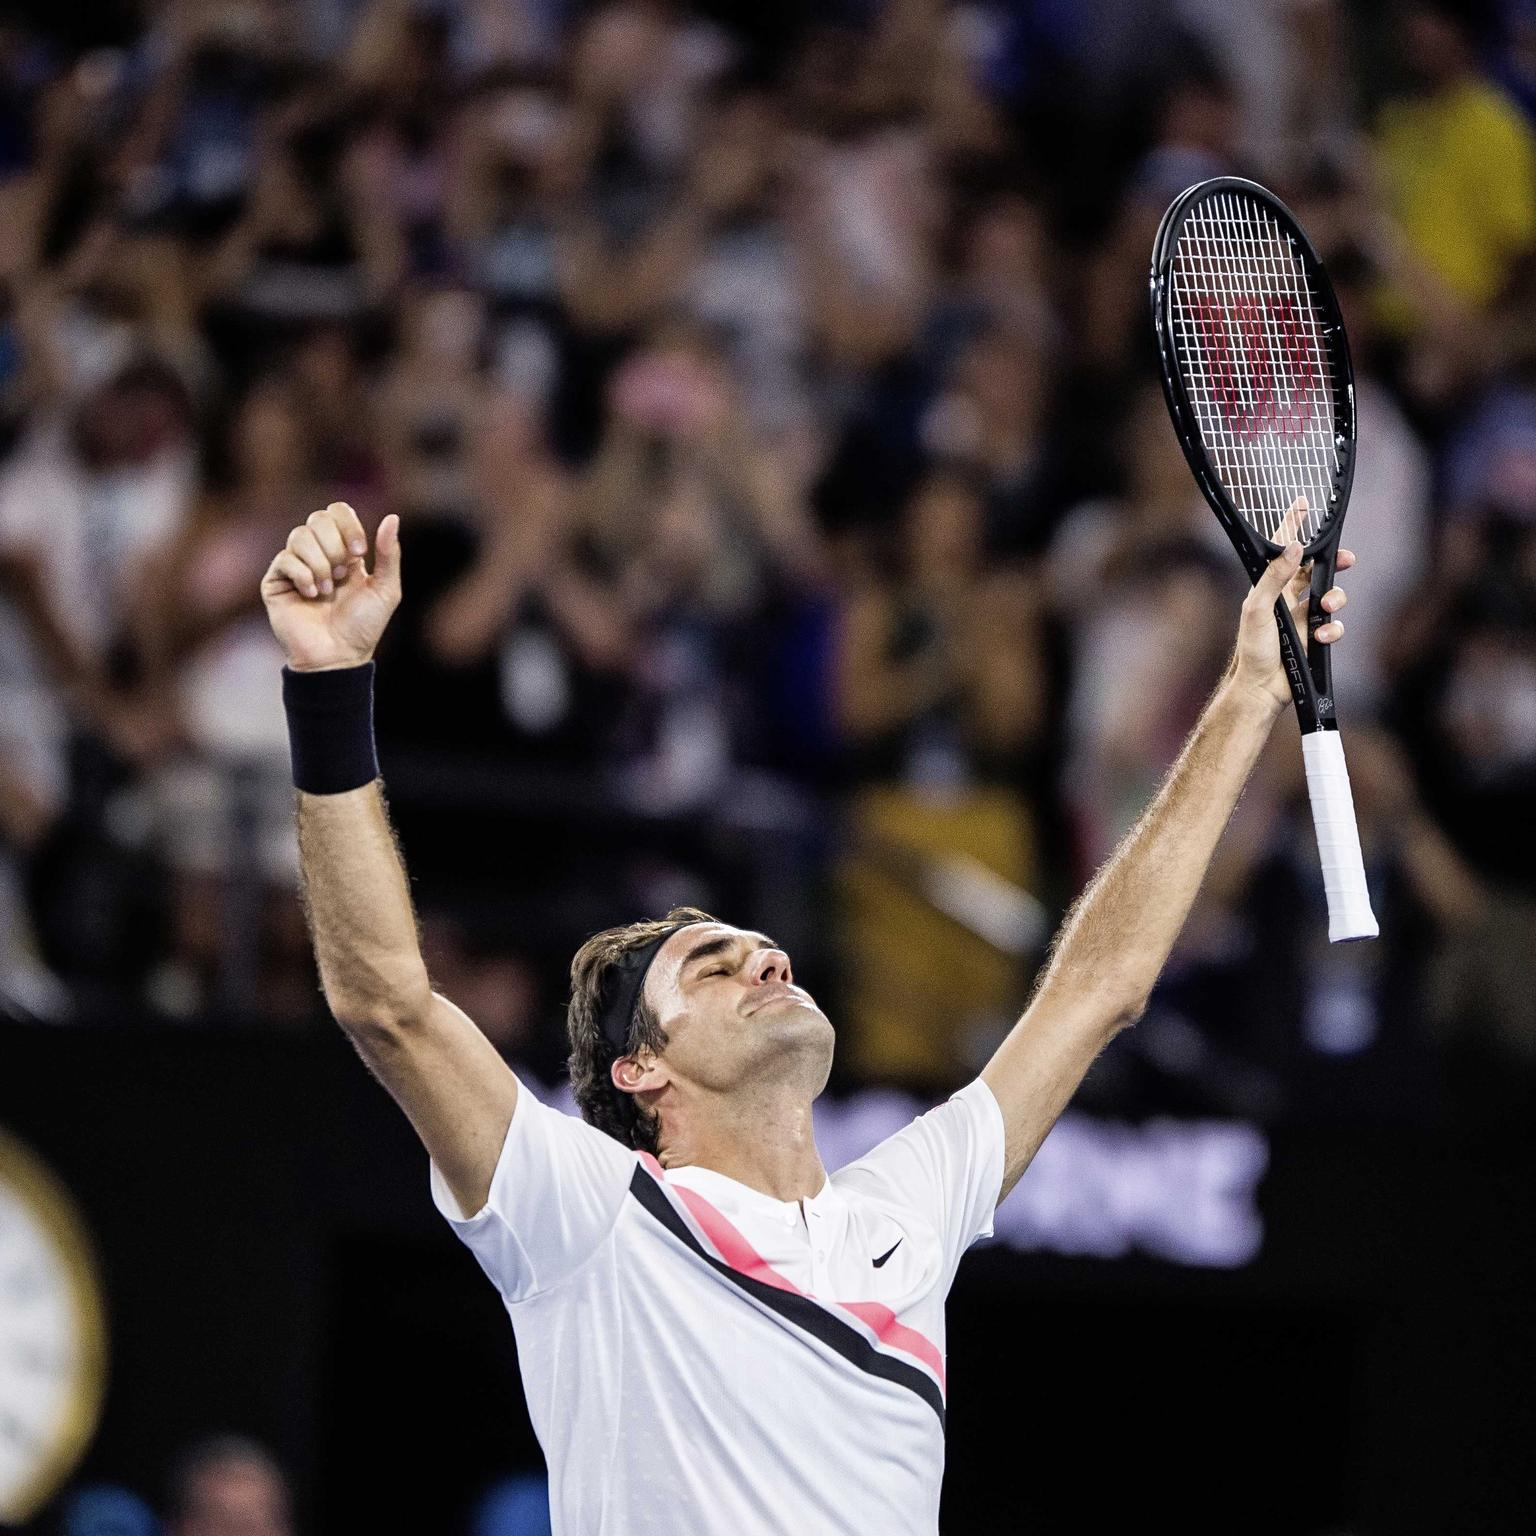 Roger Federer wins his sixth Australian Open title and his 20th Grand Slam men's singles title